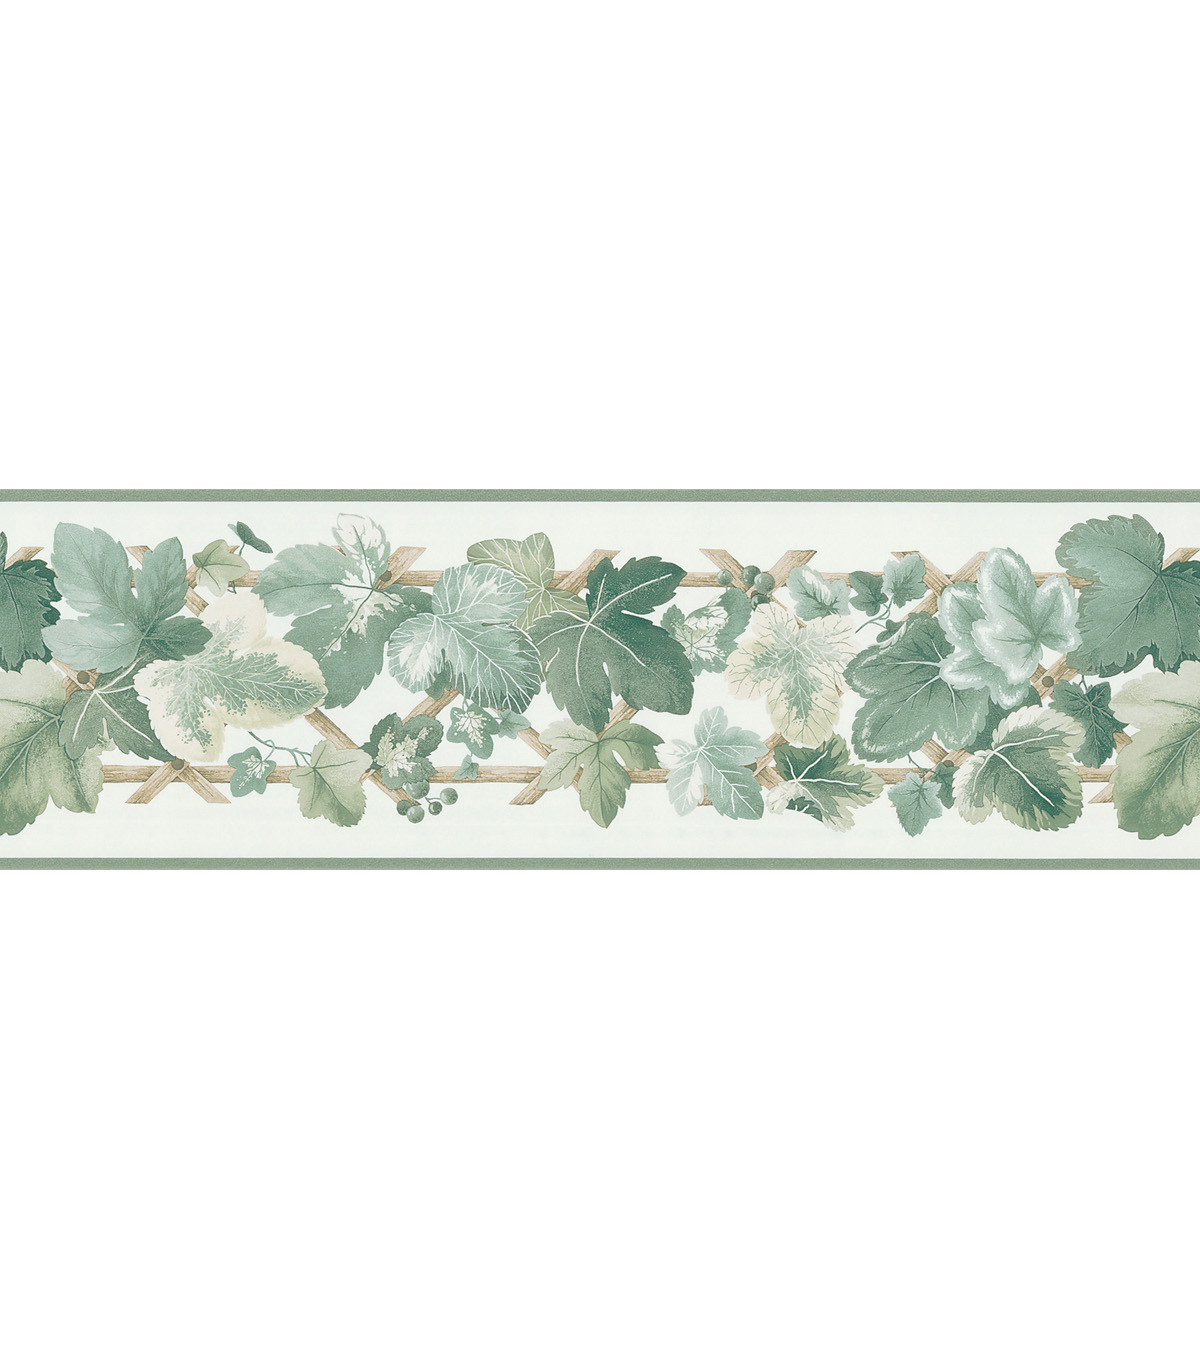 Trauben Green Leaves Wallpaper Border Sample